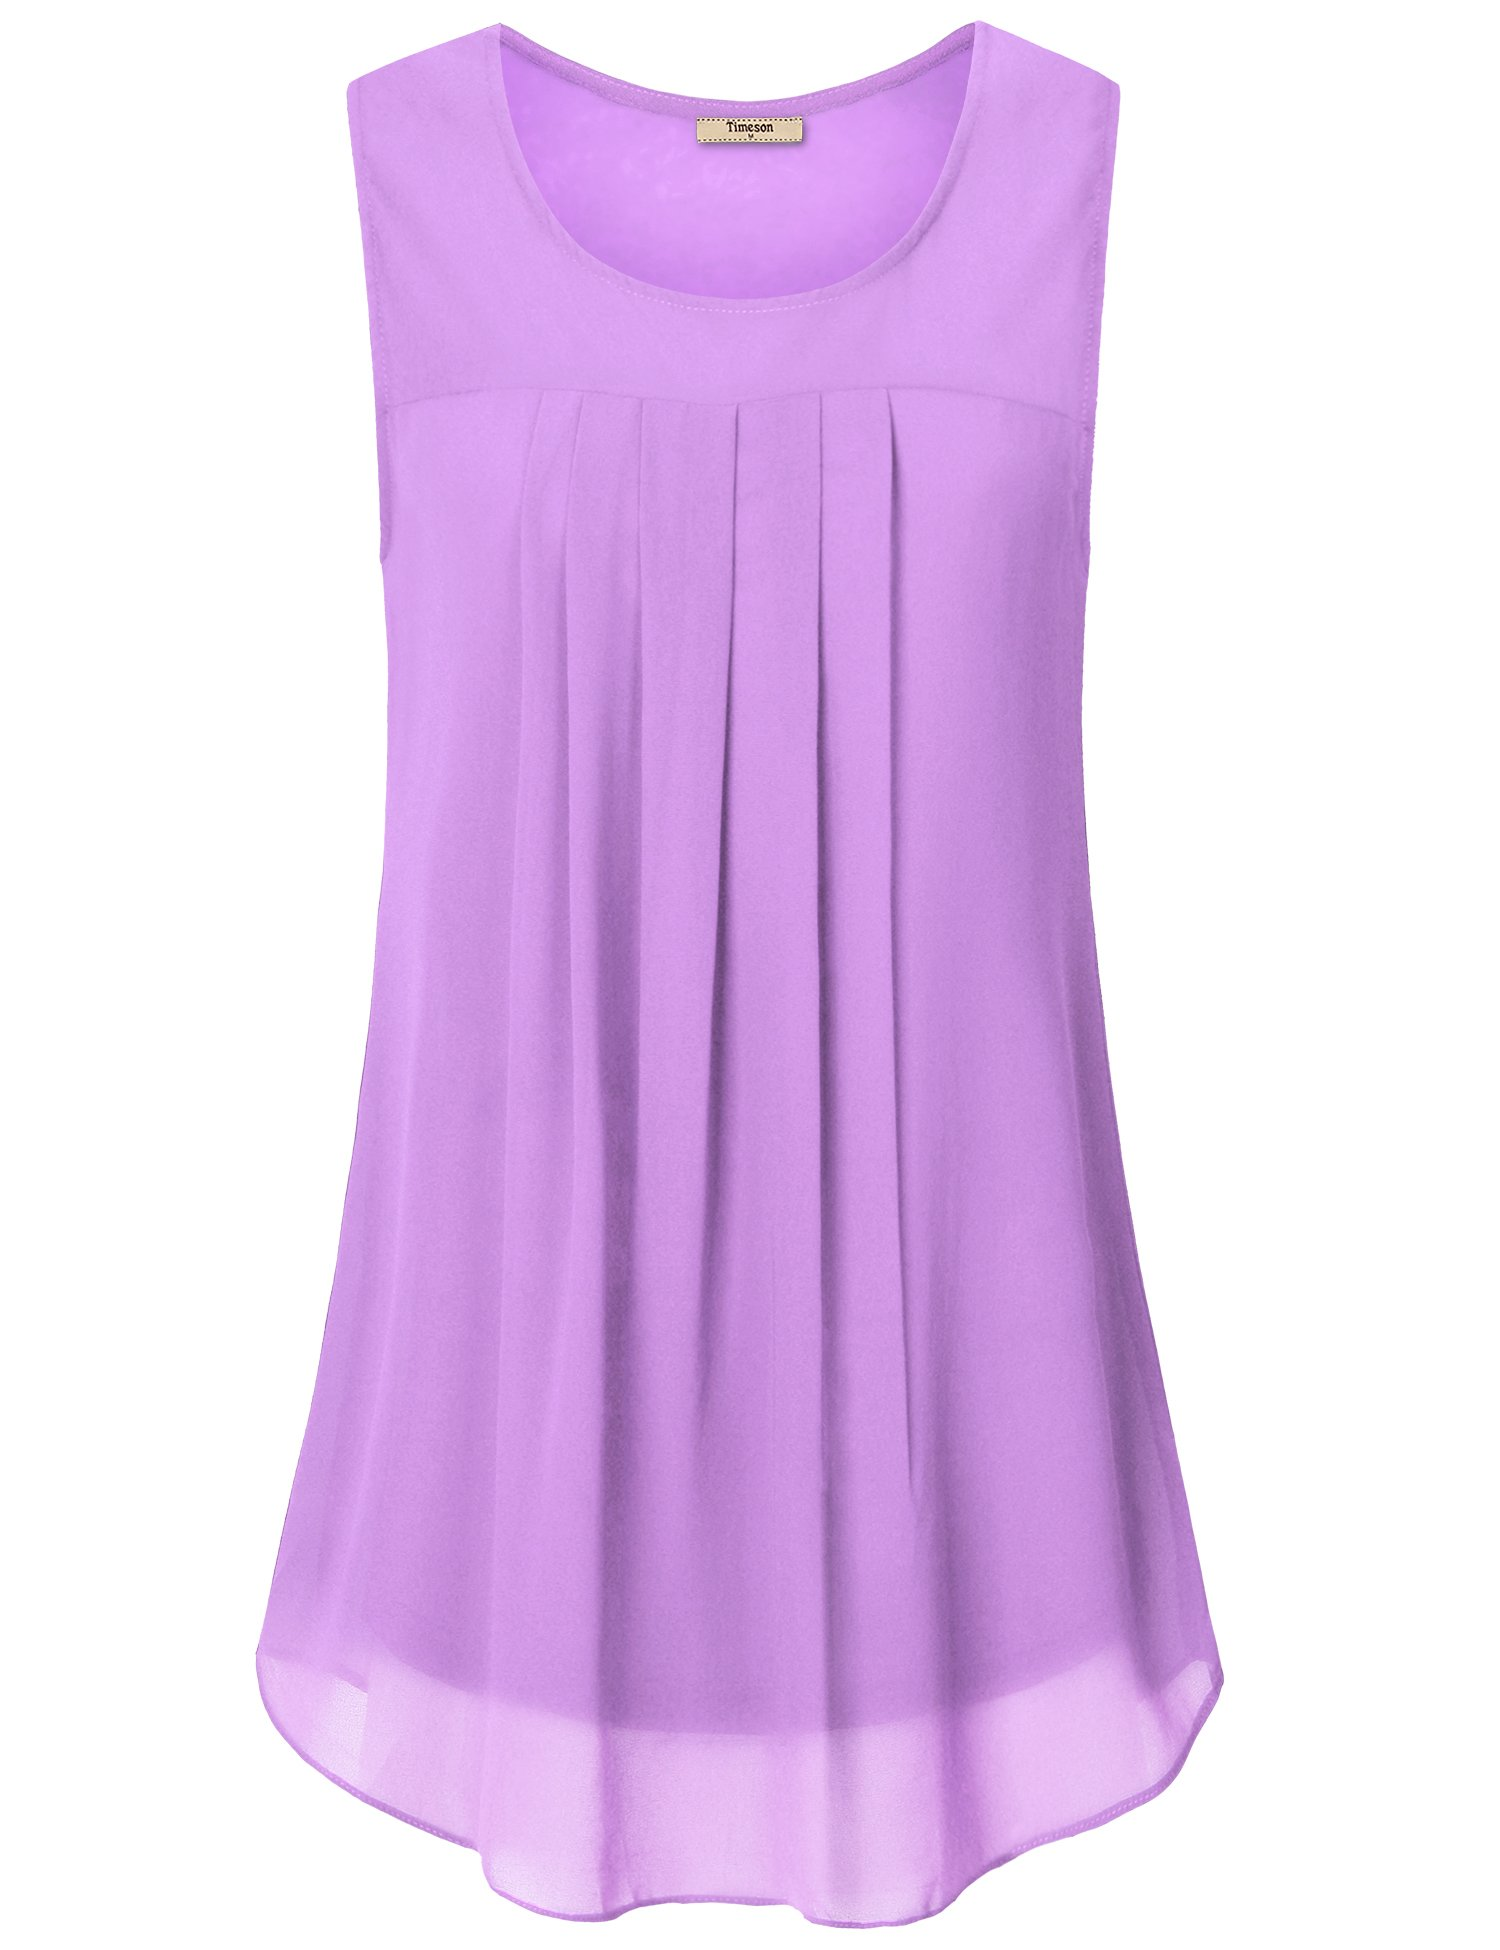 Timeson Loose fit Tank top,Sleeveless Tunics for Women, Womens Casual Tank Top Comfy Sleeveless Tunic Shirt Breathable Lightweight Blouse Top Light Violet X-Large